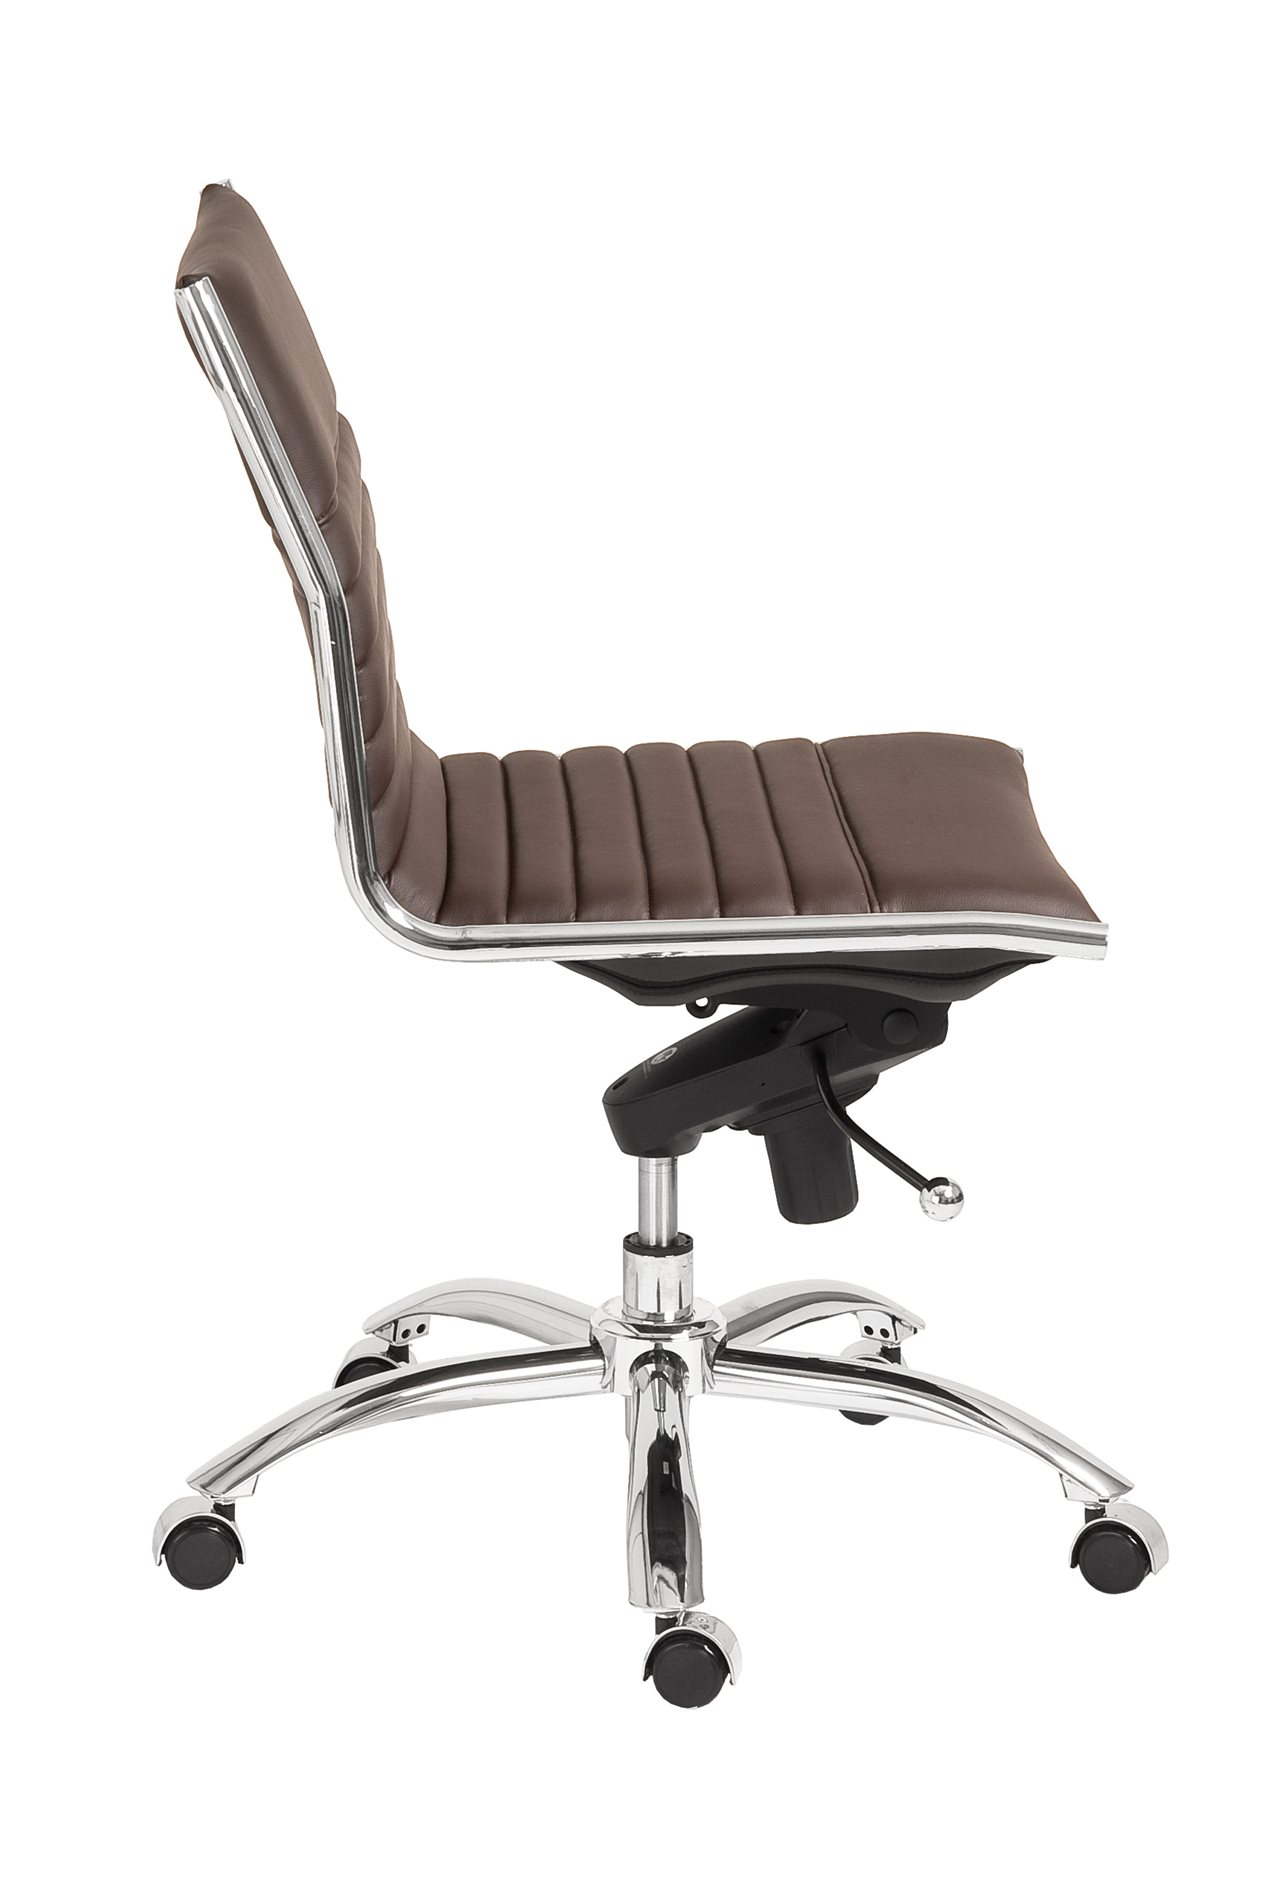 swivel office chair no arms ikea sofa euro style 01266brn dirk low back without